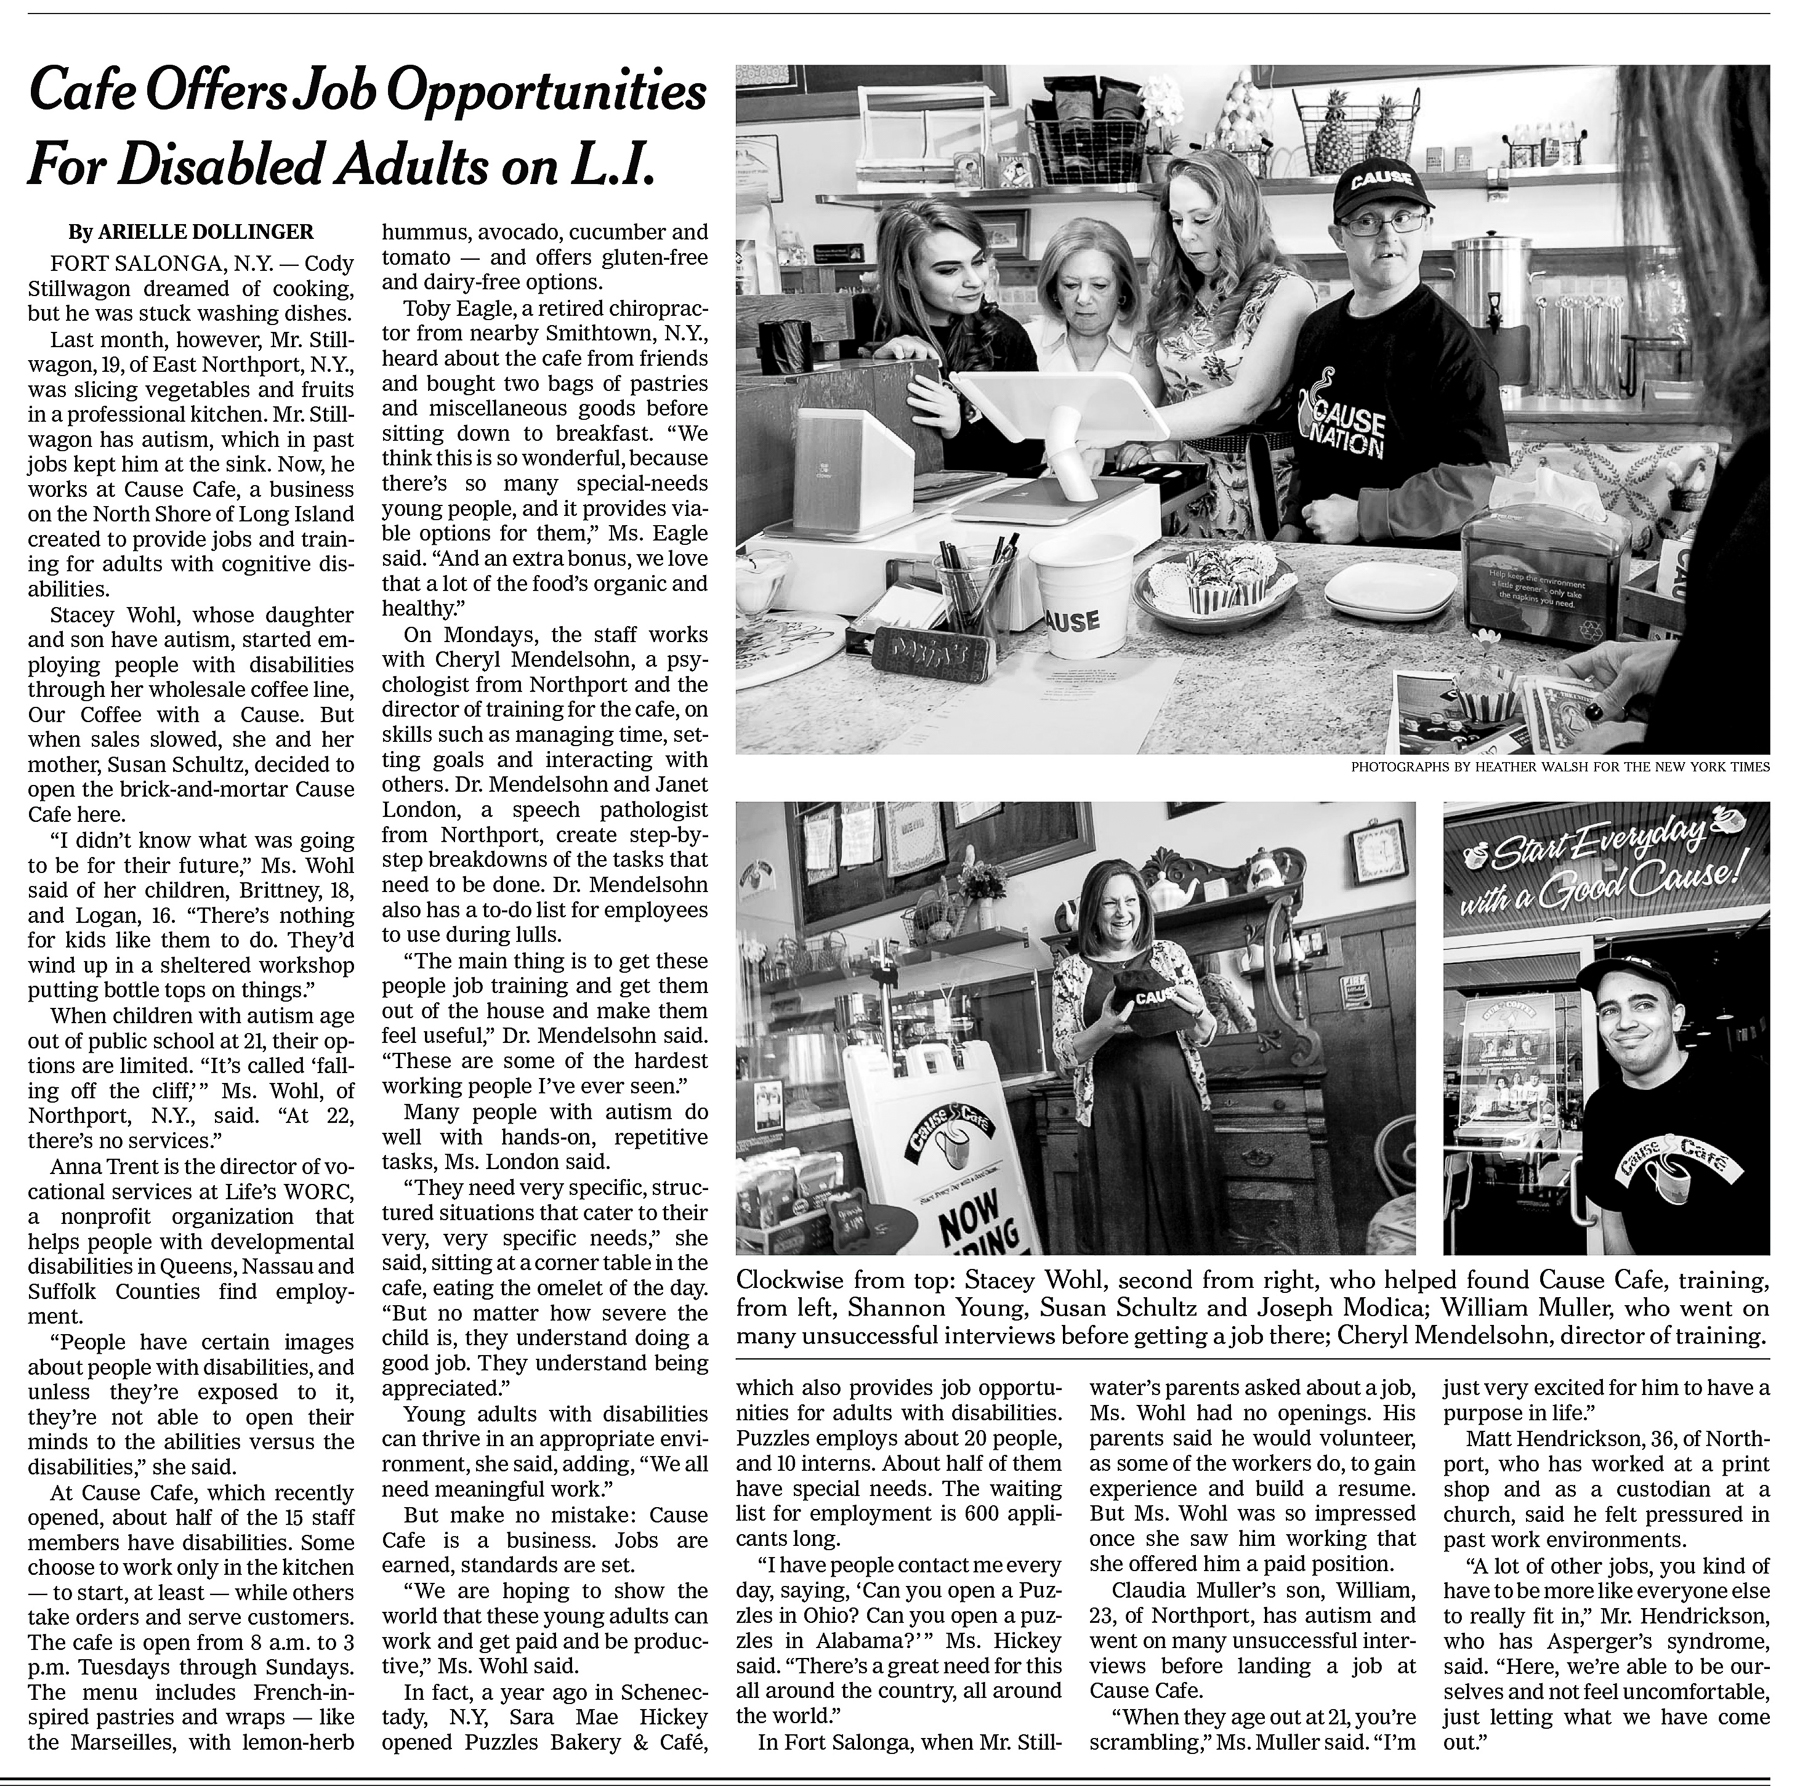 New York Times Cause Cafe